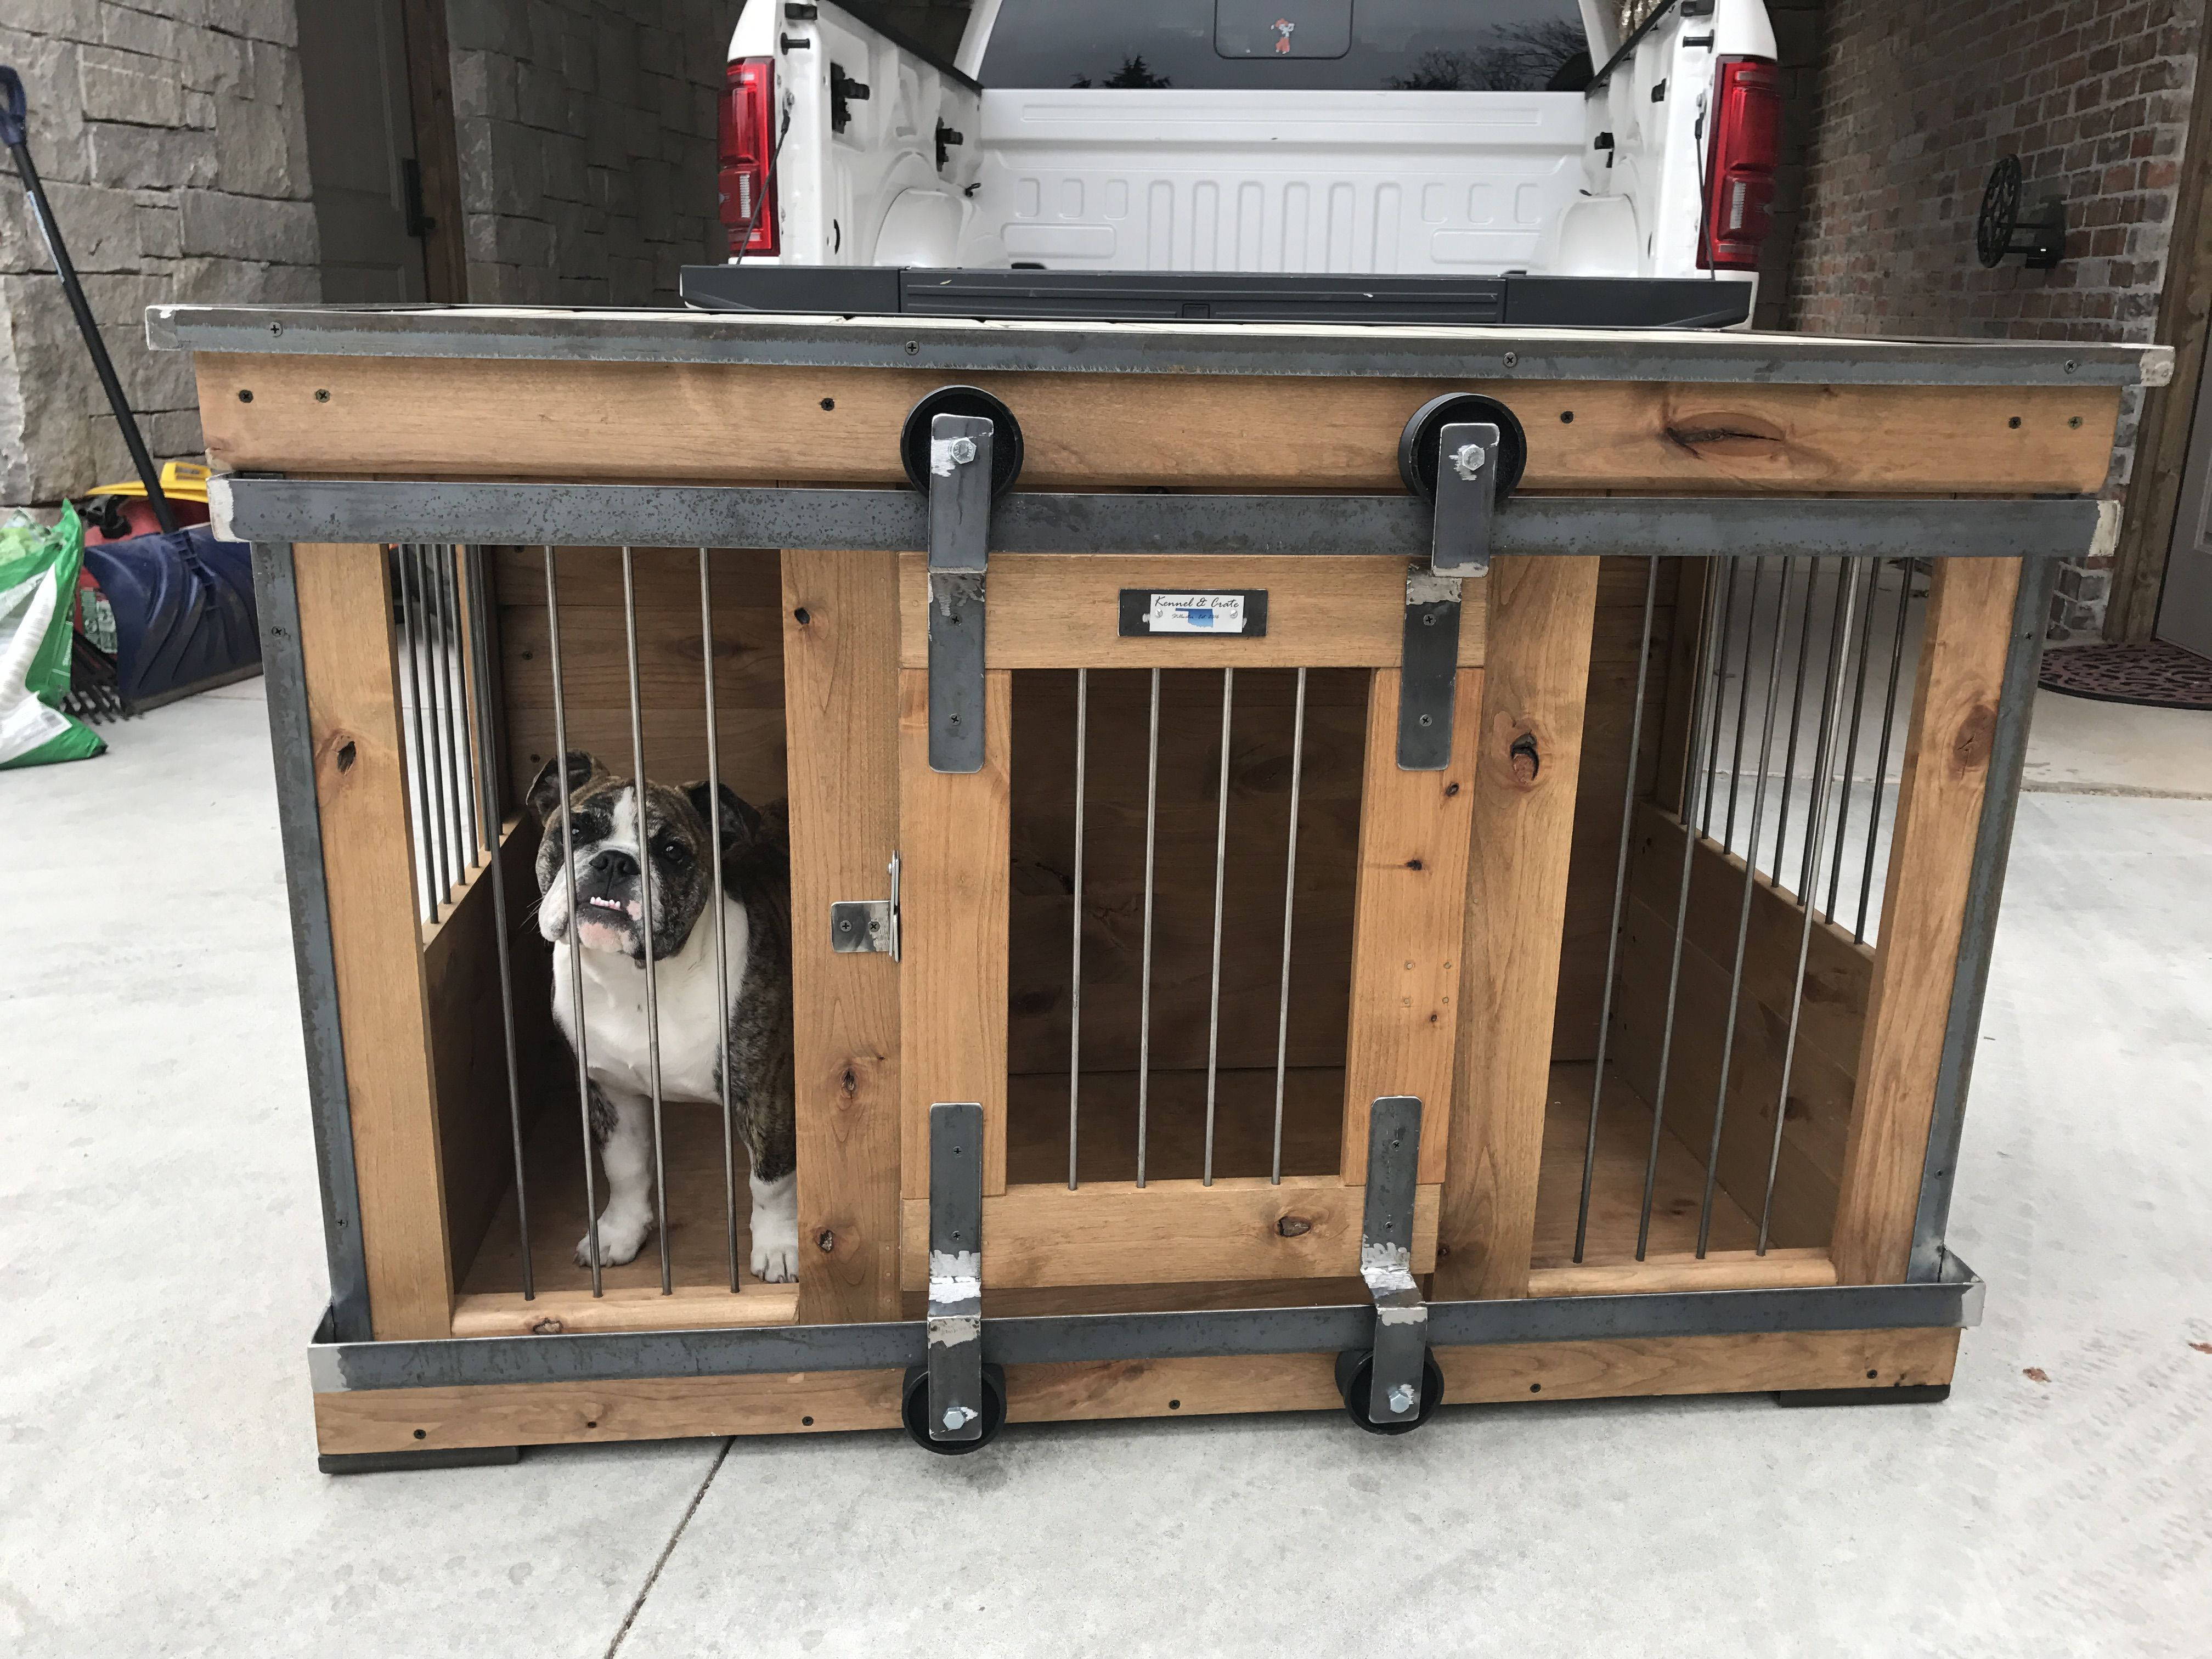 Farmhouse Style Single Dog Kennel By Kennel And Crate Barn Door Rollin Door That Can Remain Wide Opened For Luxury Dog Kennels Dog Kennel Wooden Dog Kennels